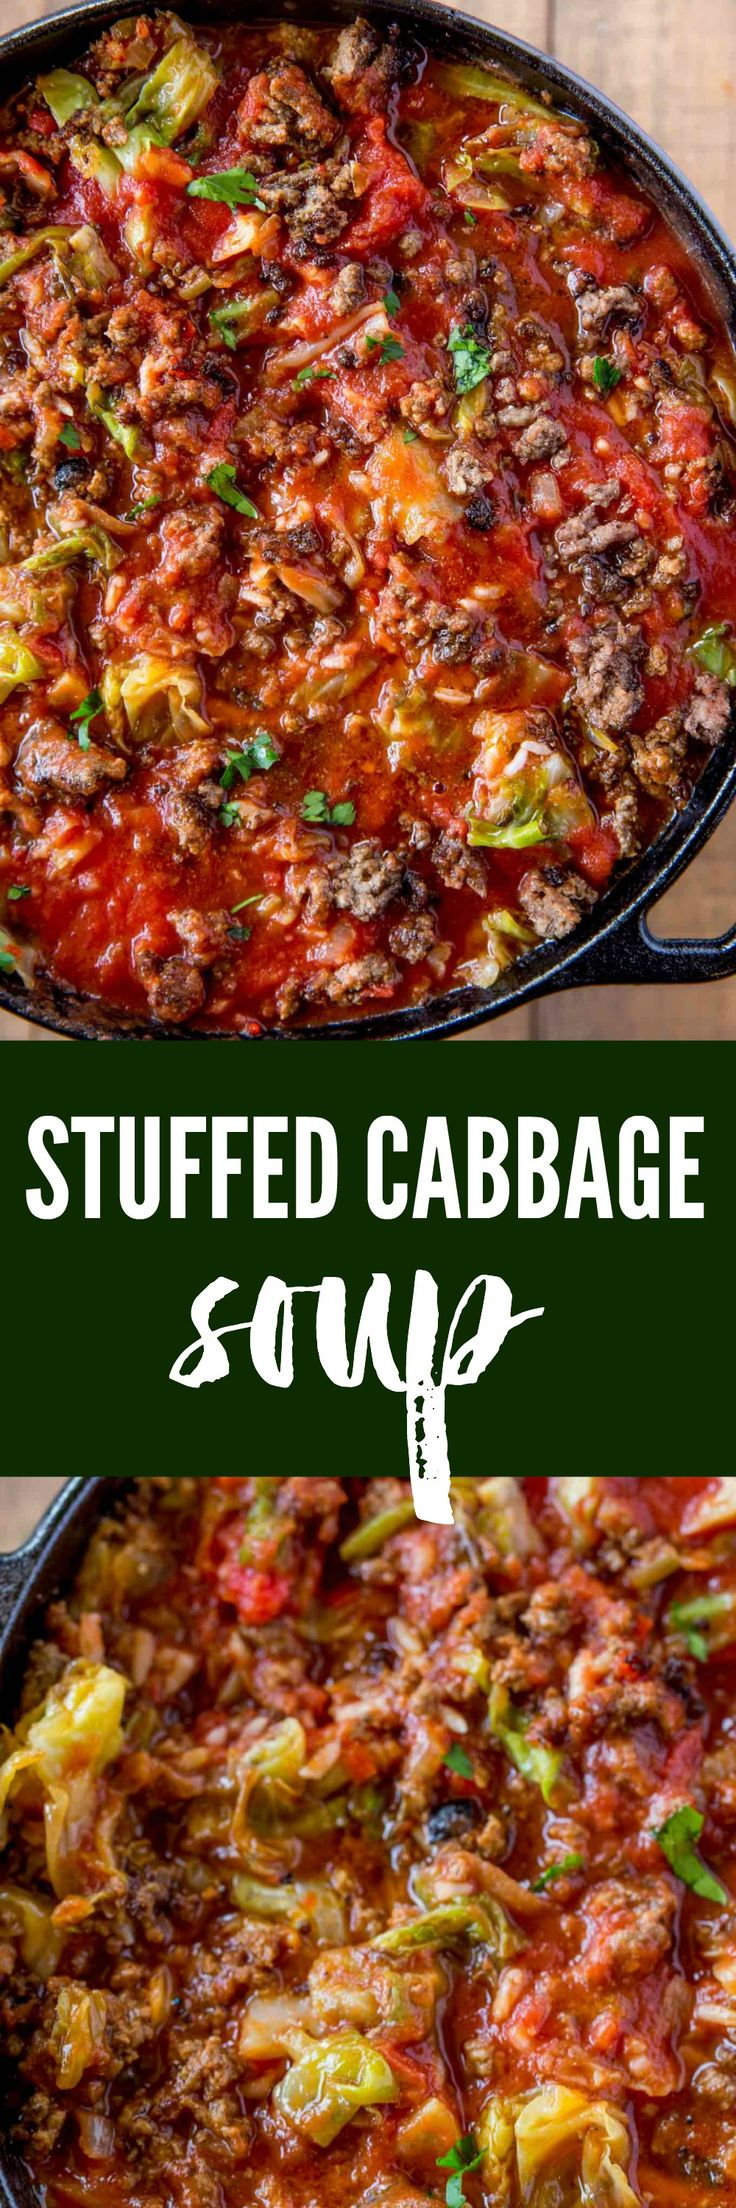 Stuffed Cabbage Soup made with ground beef, rice, cabbage and fresh tomato sauce on your stovetop in just thirty minutes.